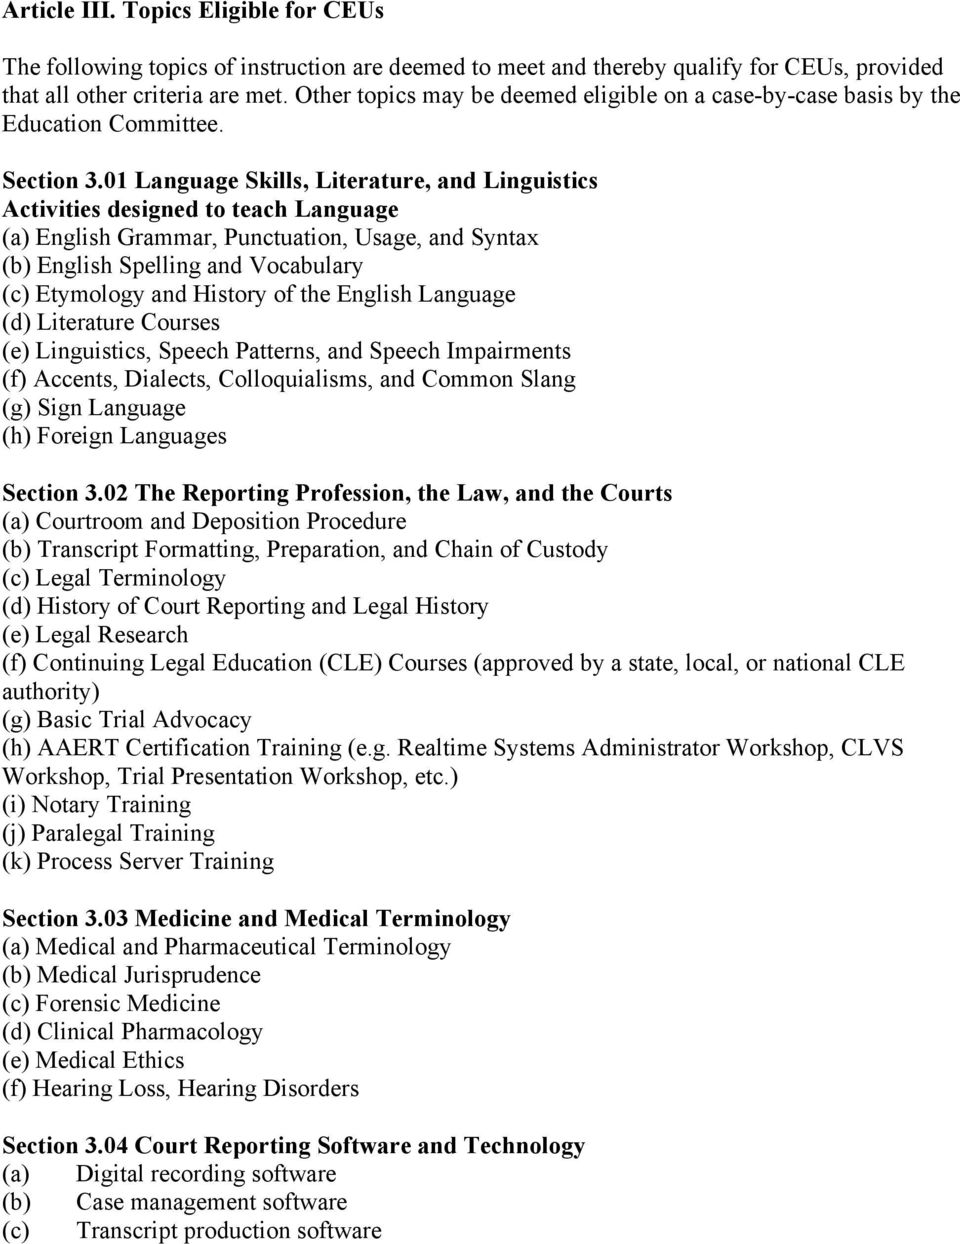 01 Language Skills, Literature, and Linguistics Activities designed to teach Language (a) English Grammar, Punctuation, Usage, and Syntax (b) English Spelling and Vocabulary (c) Etymology and History